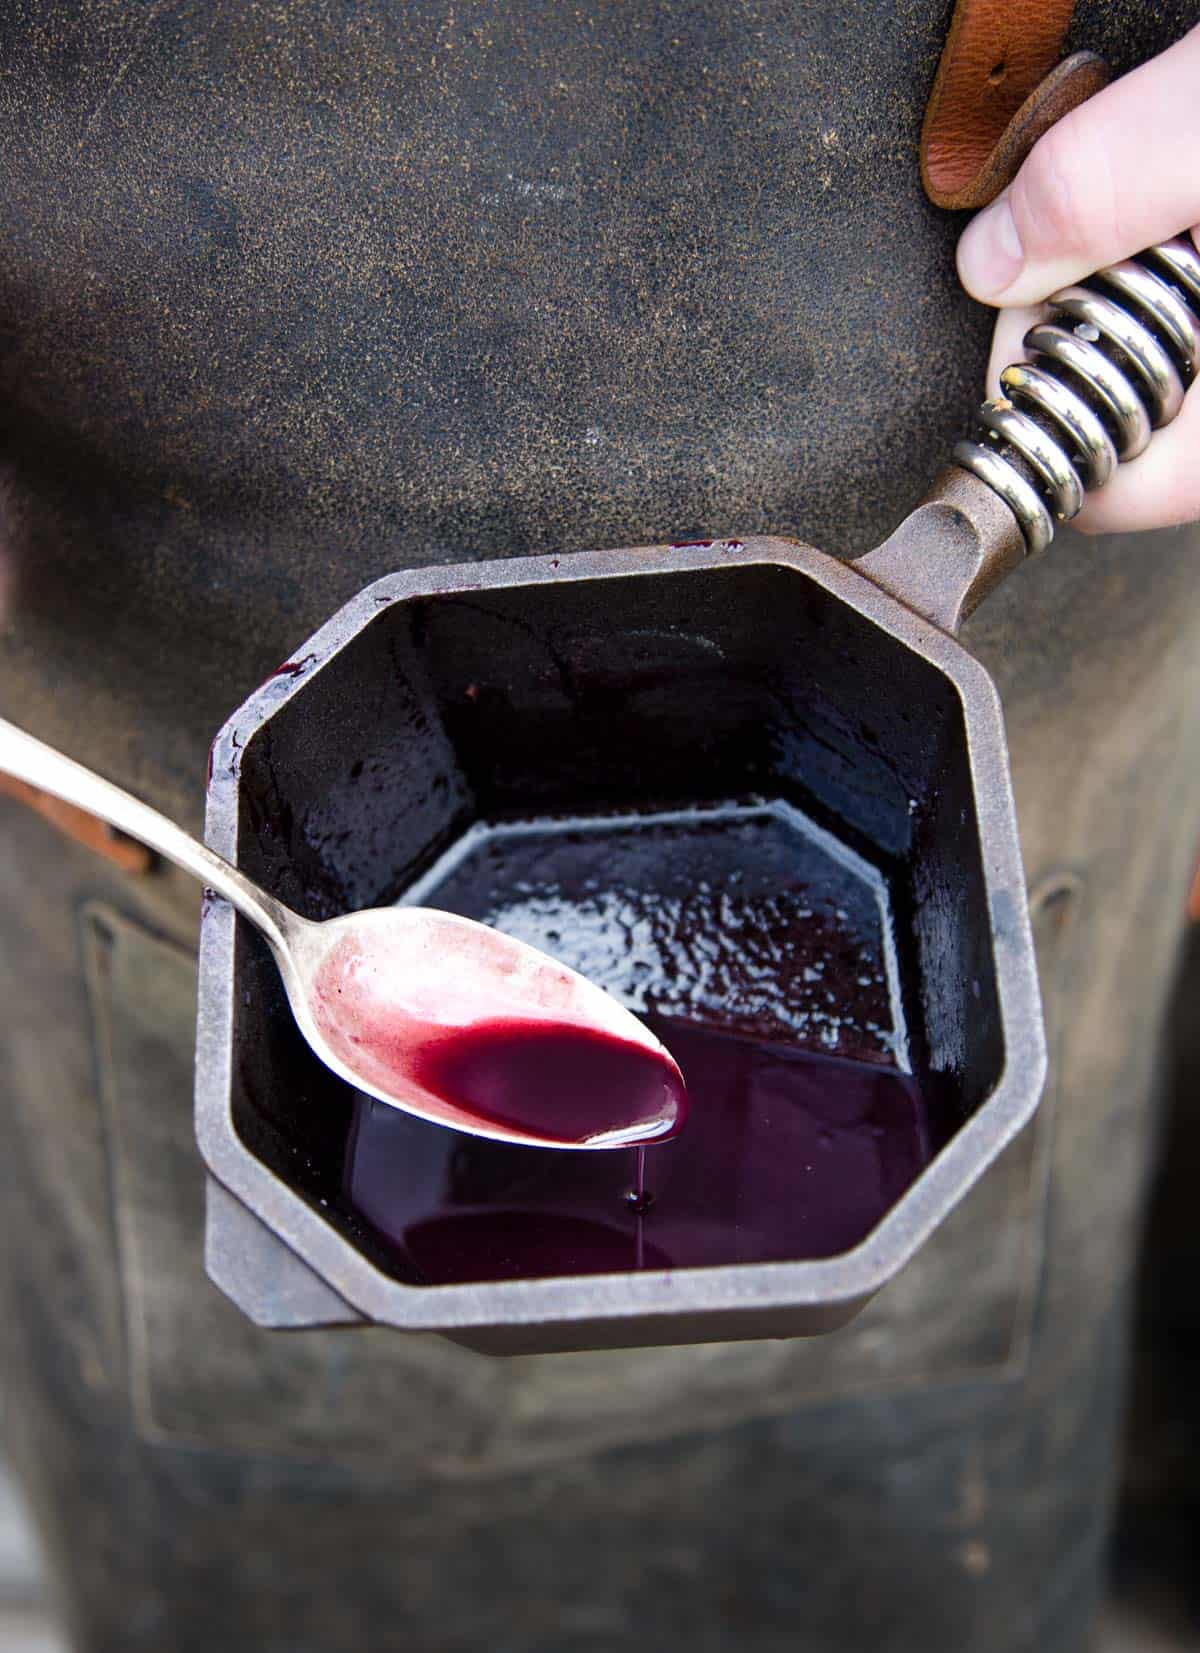 Pinot Noir wine and Marionberry reduction sauce in a small saucepan